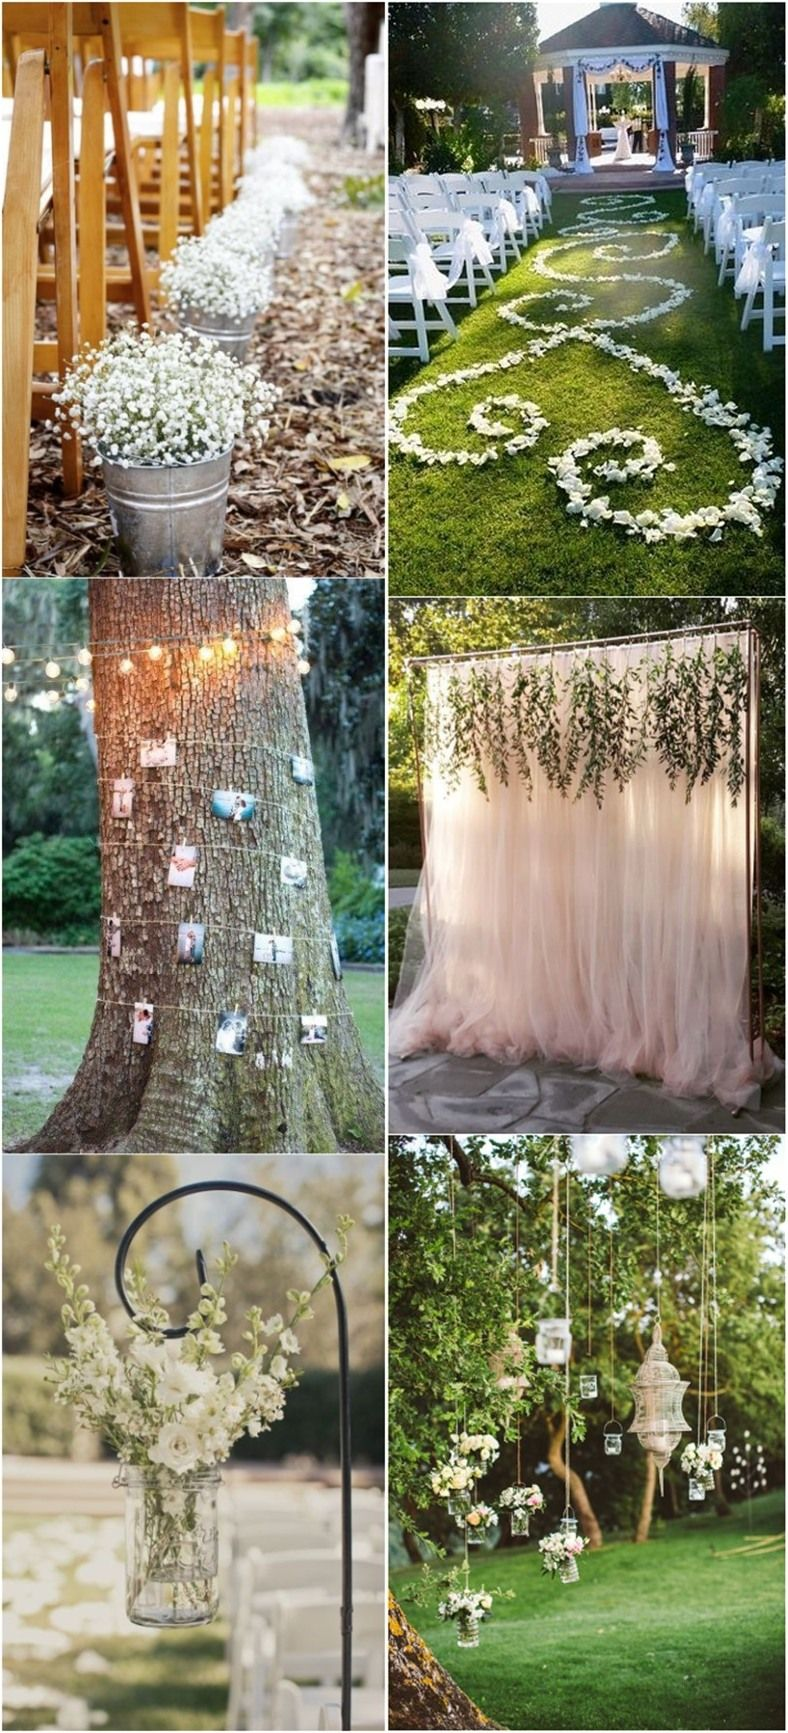 Outdoor Wedding Ideas.20 Genius Outdoor Wedding Ideas Wedding Decorations Outdoor